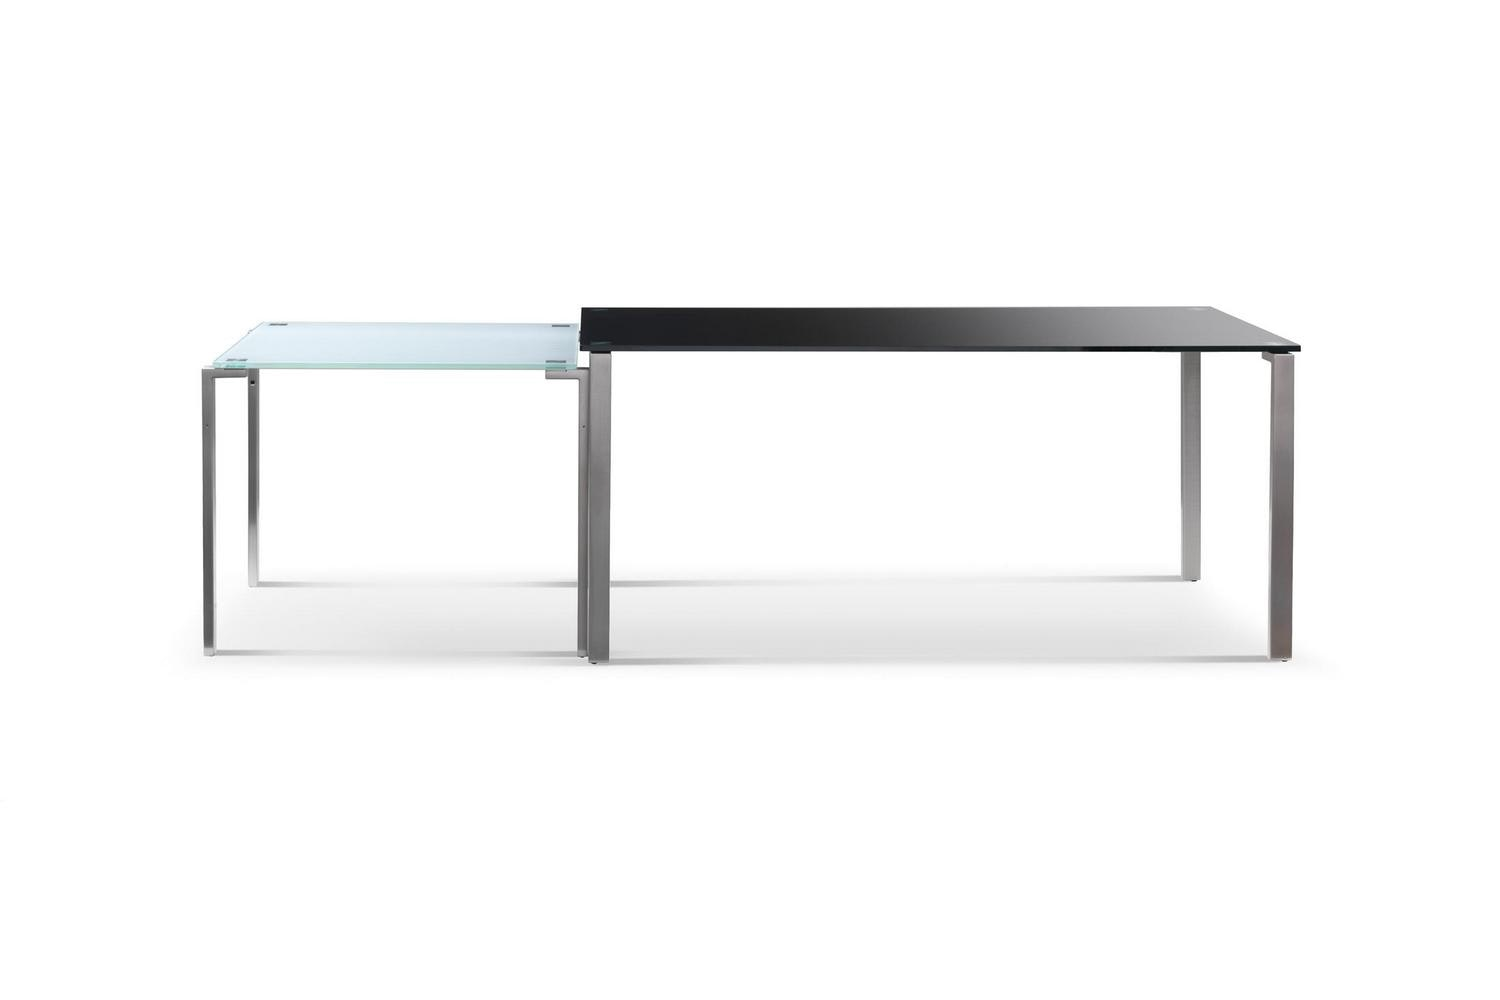 W31-32 1=2 Table by Jean Nouvel for Cassina